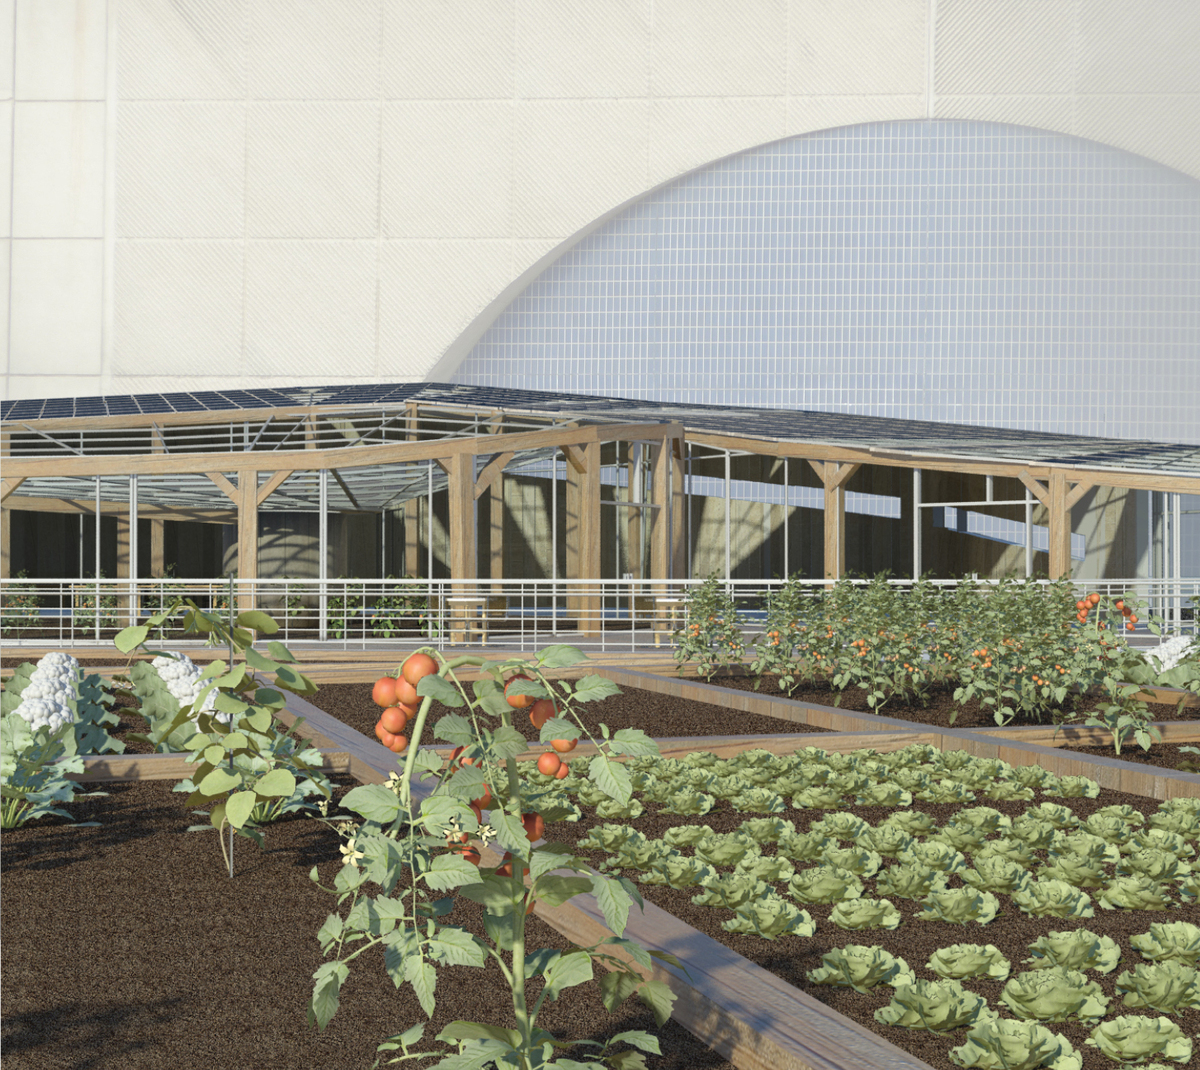 Harlem Piers Farm proposal vegetable gardens and greenhouse.